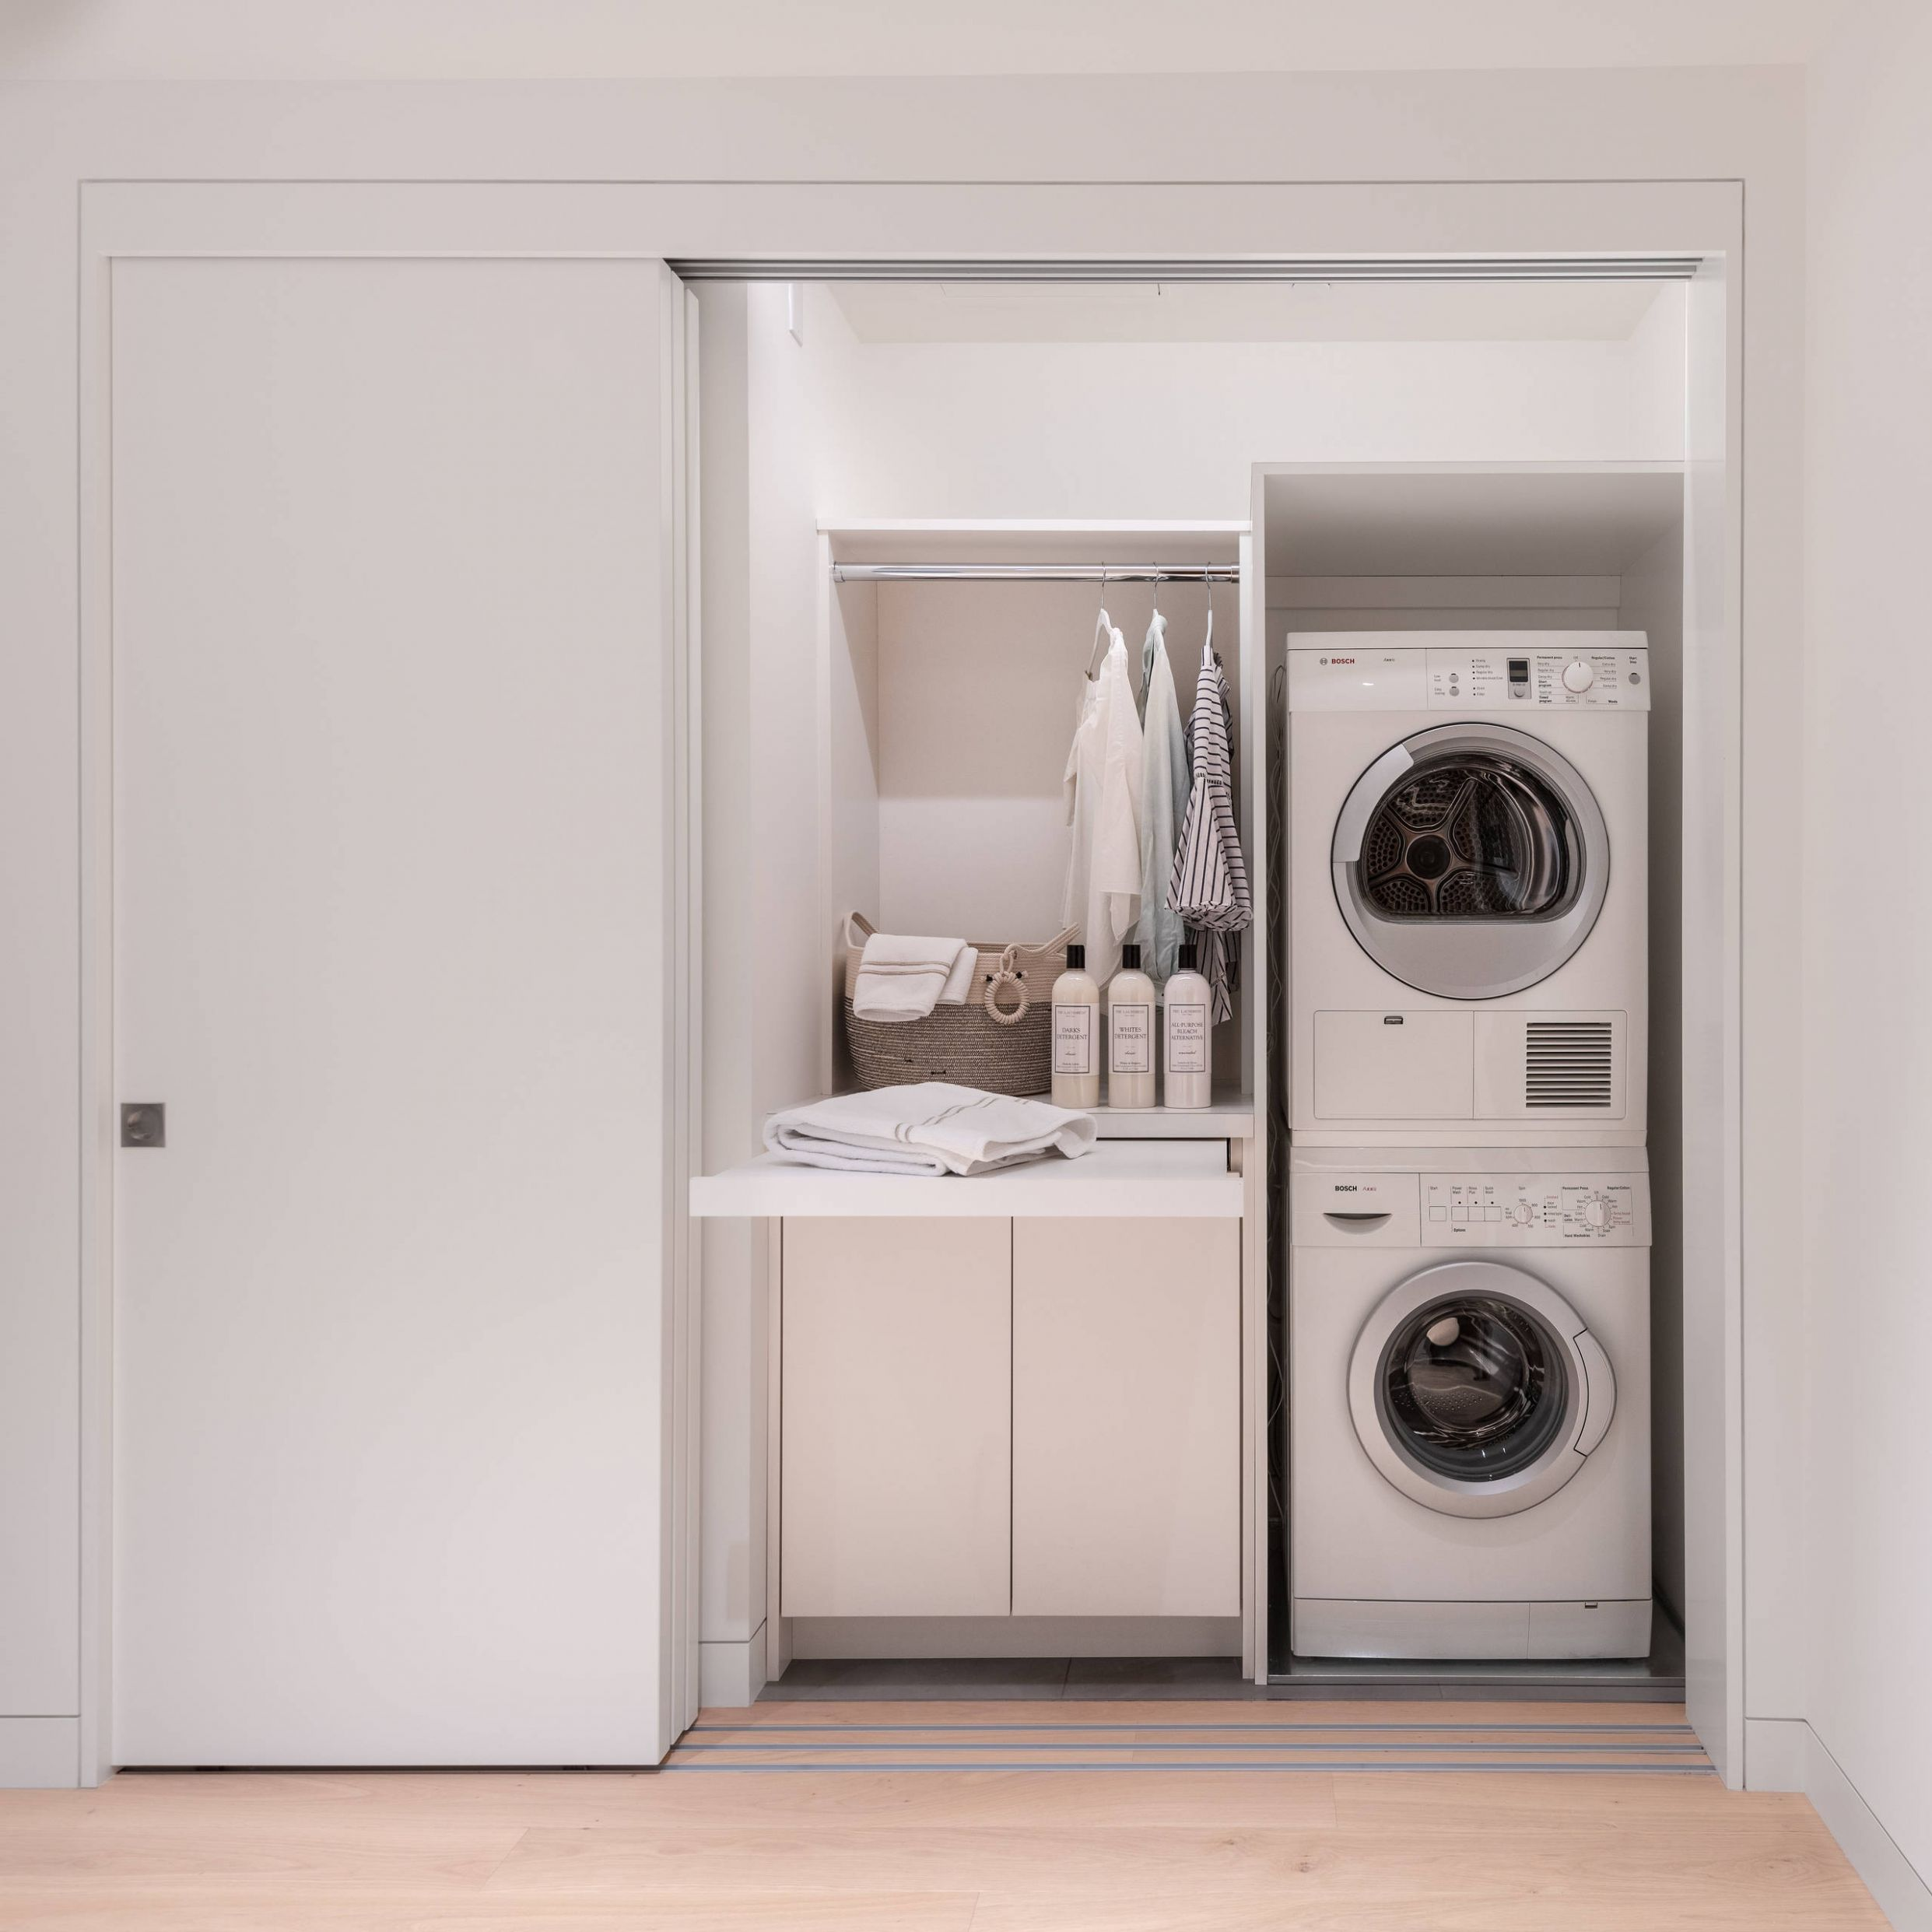 11 Beautiful Laundry Closet Pictures & Ideas | Houzz - laundry room ideas in closet